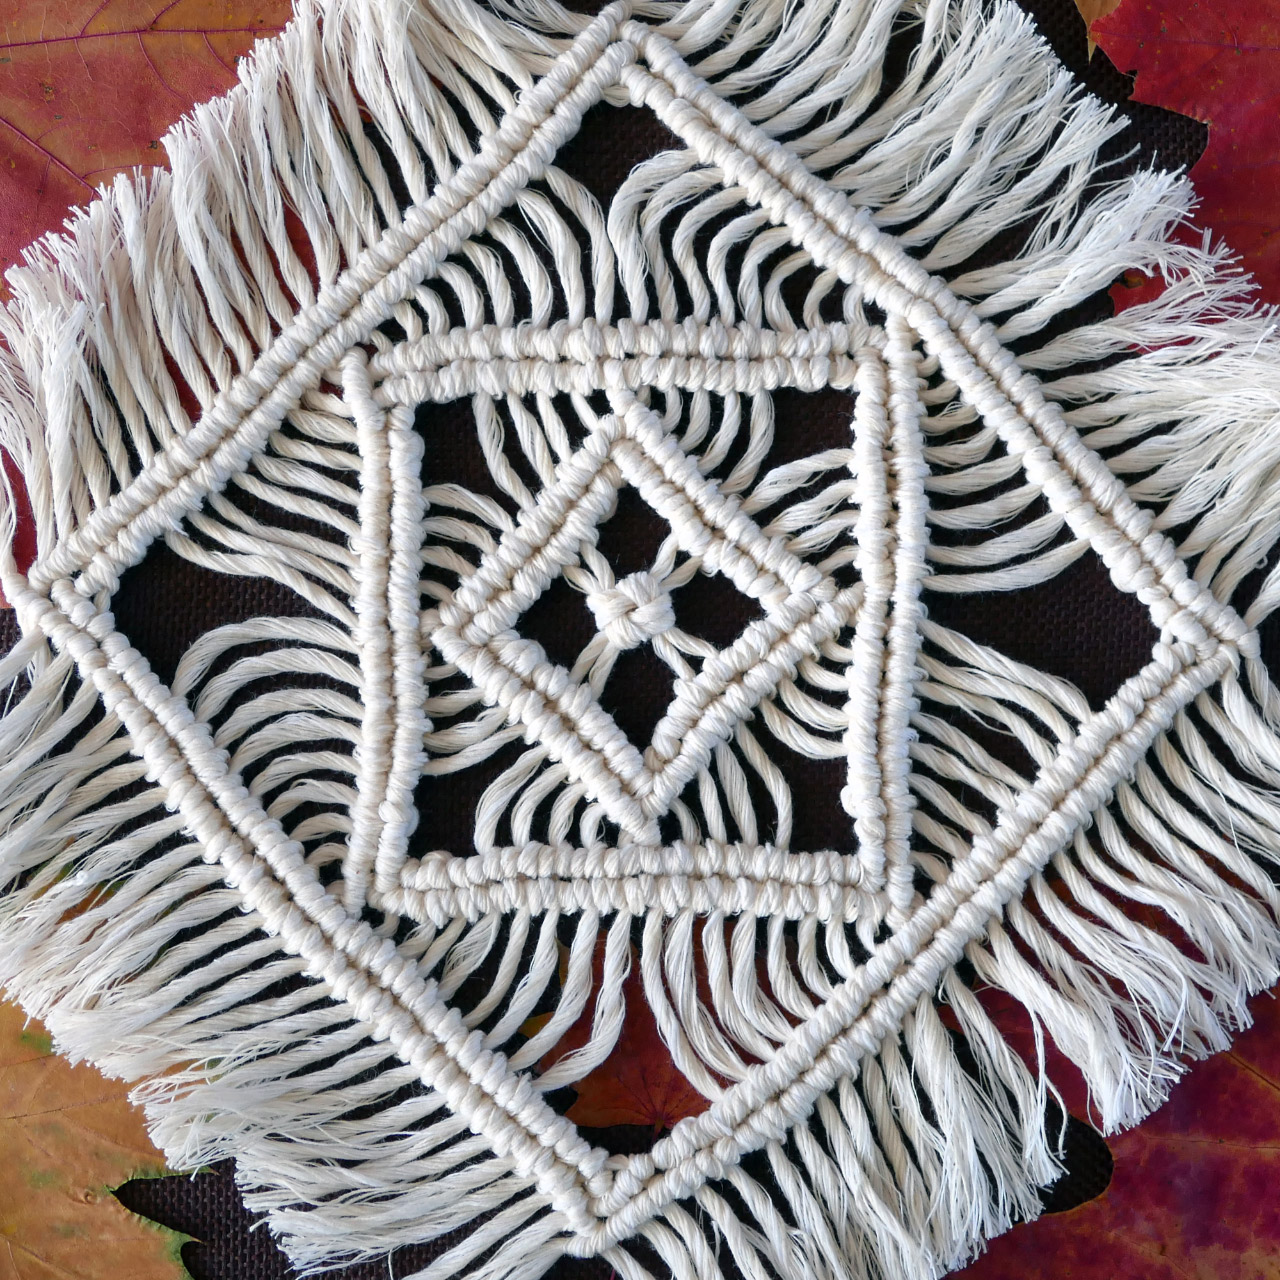 Macrame Tablecloth Tutorial - Table Mats, Table Decorations